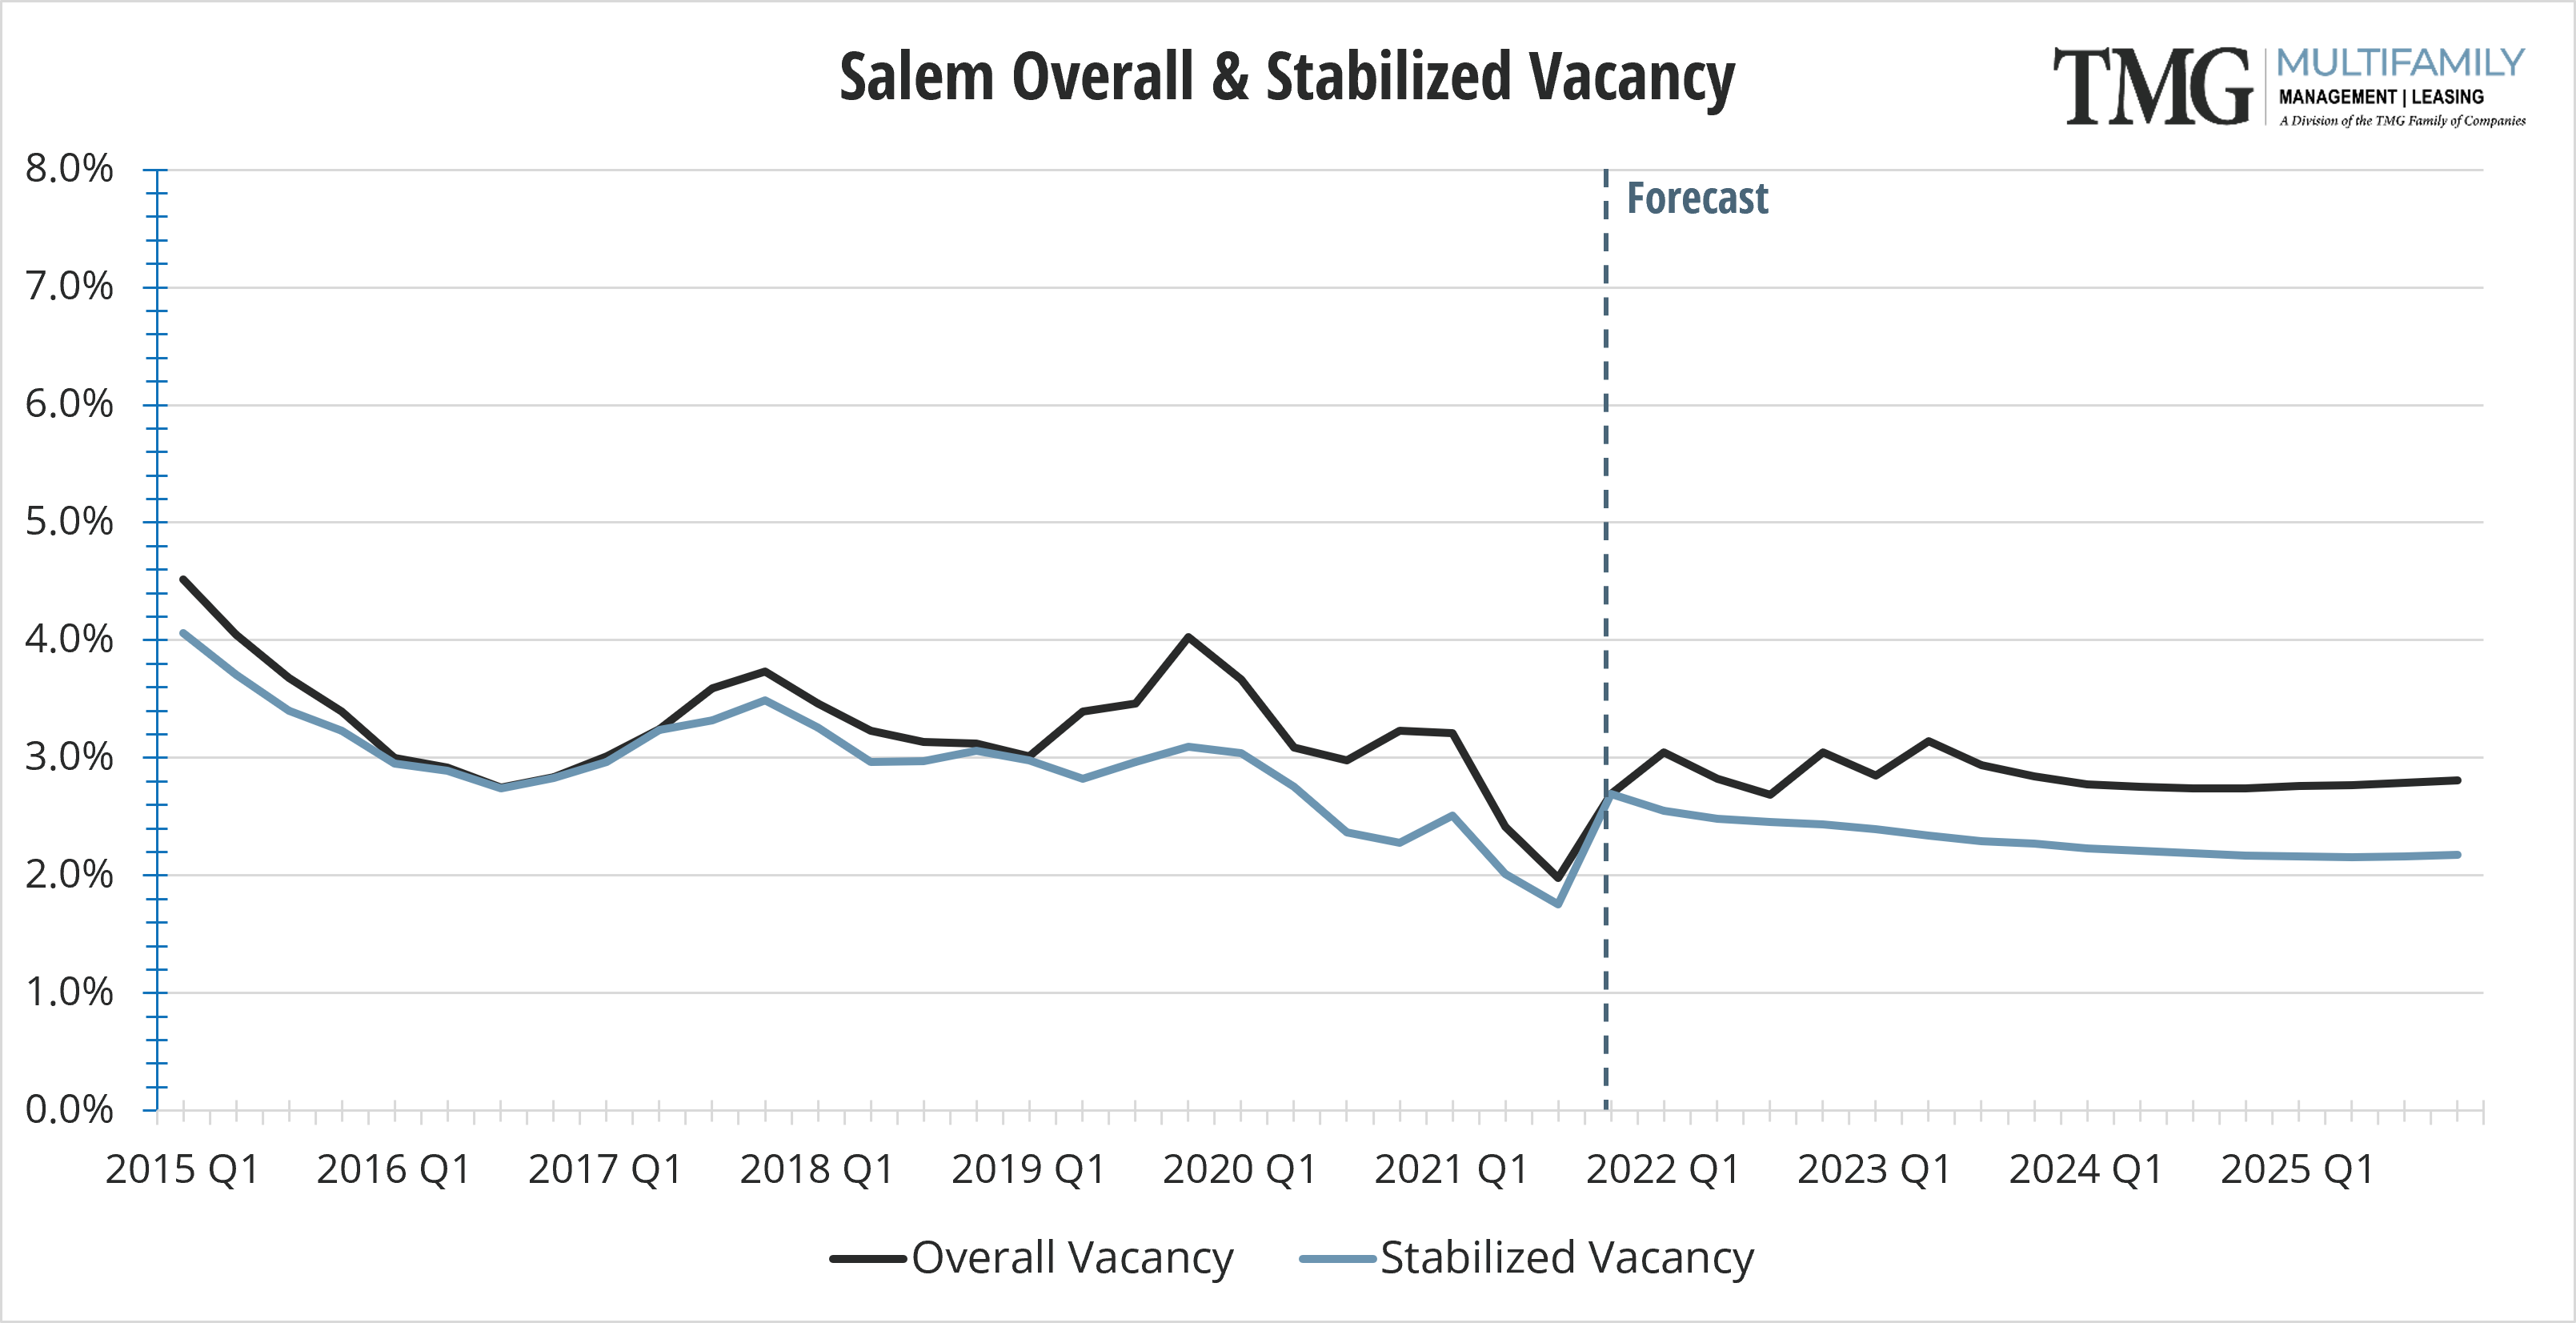 Salem Q4 Overall and Stabilized Vacancy